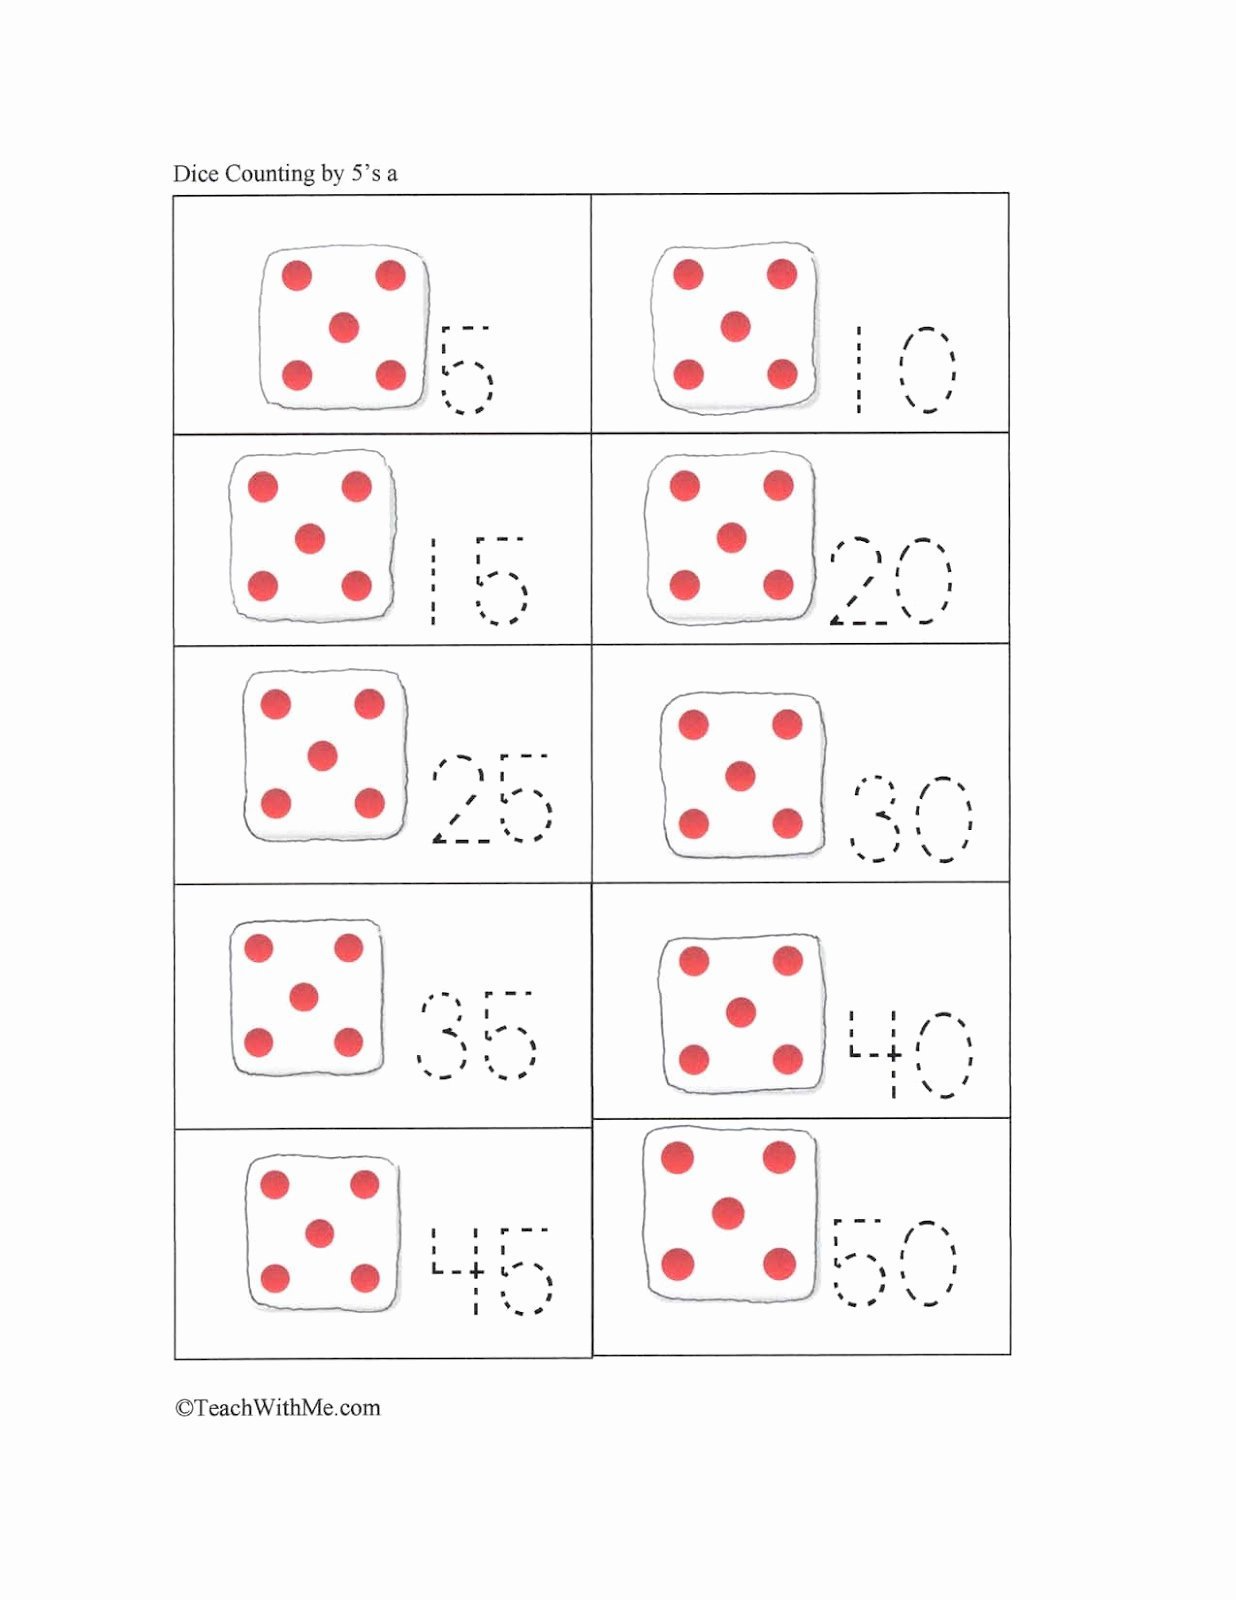 Count by 5s Worksheet Elegant Stuff to Play & Make Dice Games Classroom Freebies